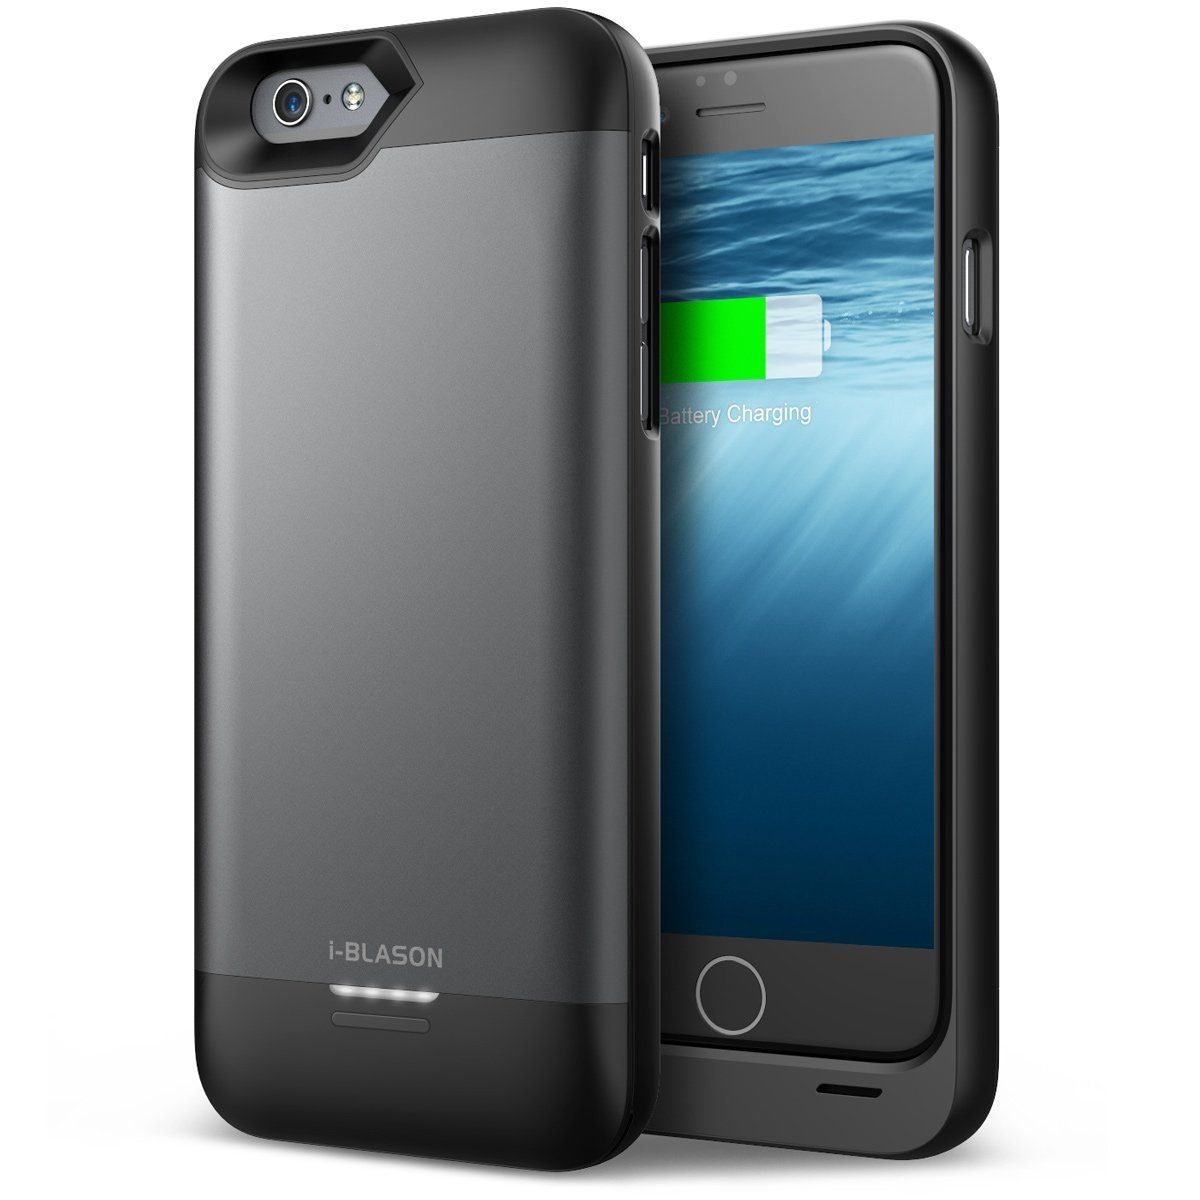 best website cf3a1 0ebbe The best battery case for the iPhone 6 - The Verge